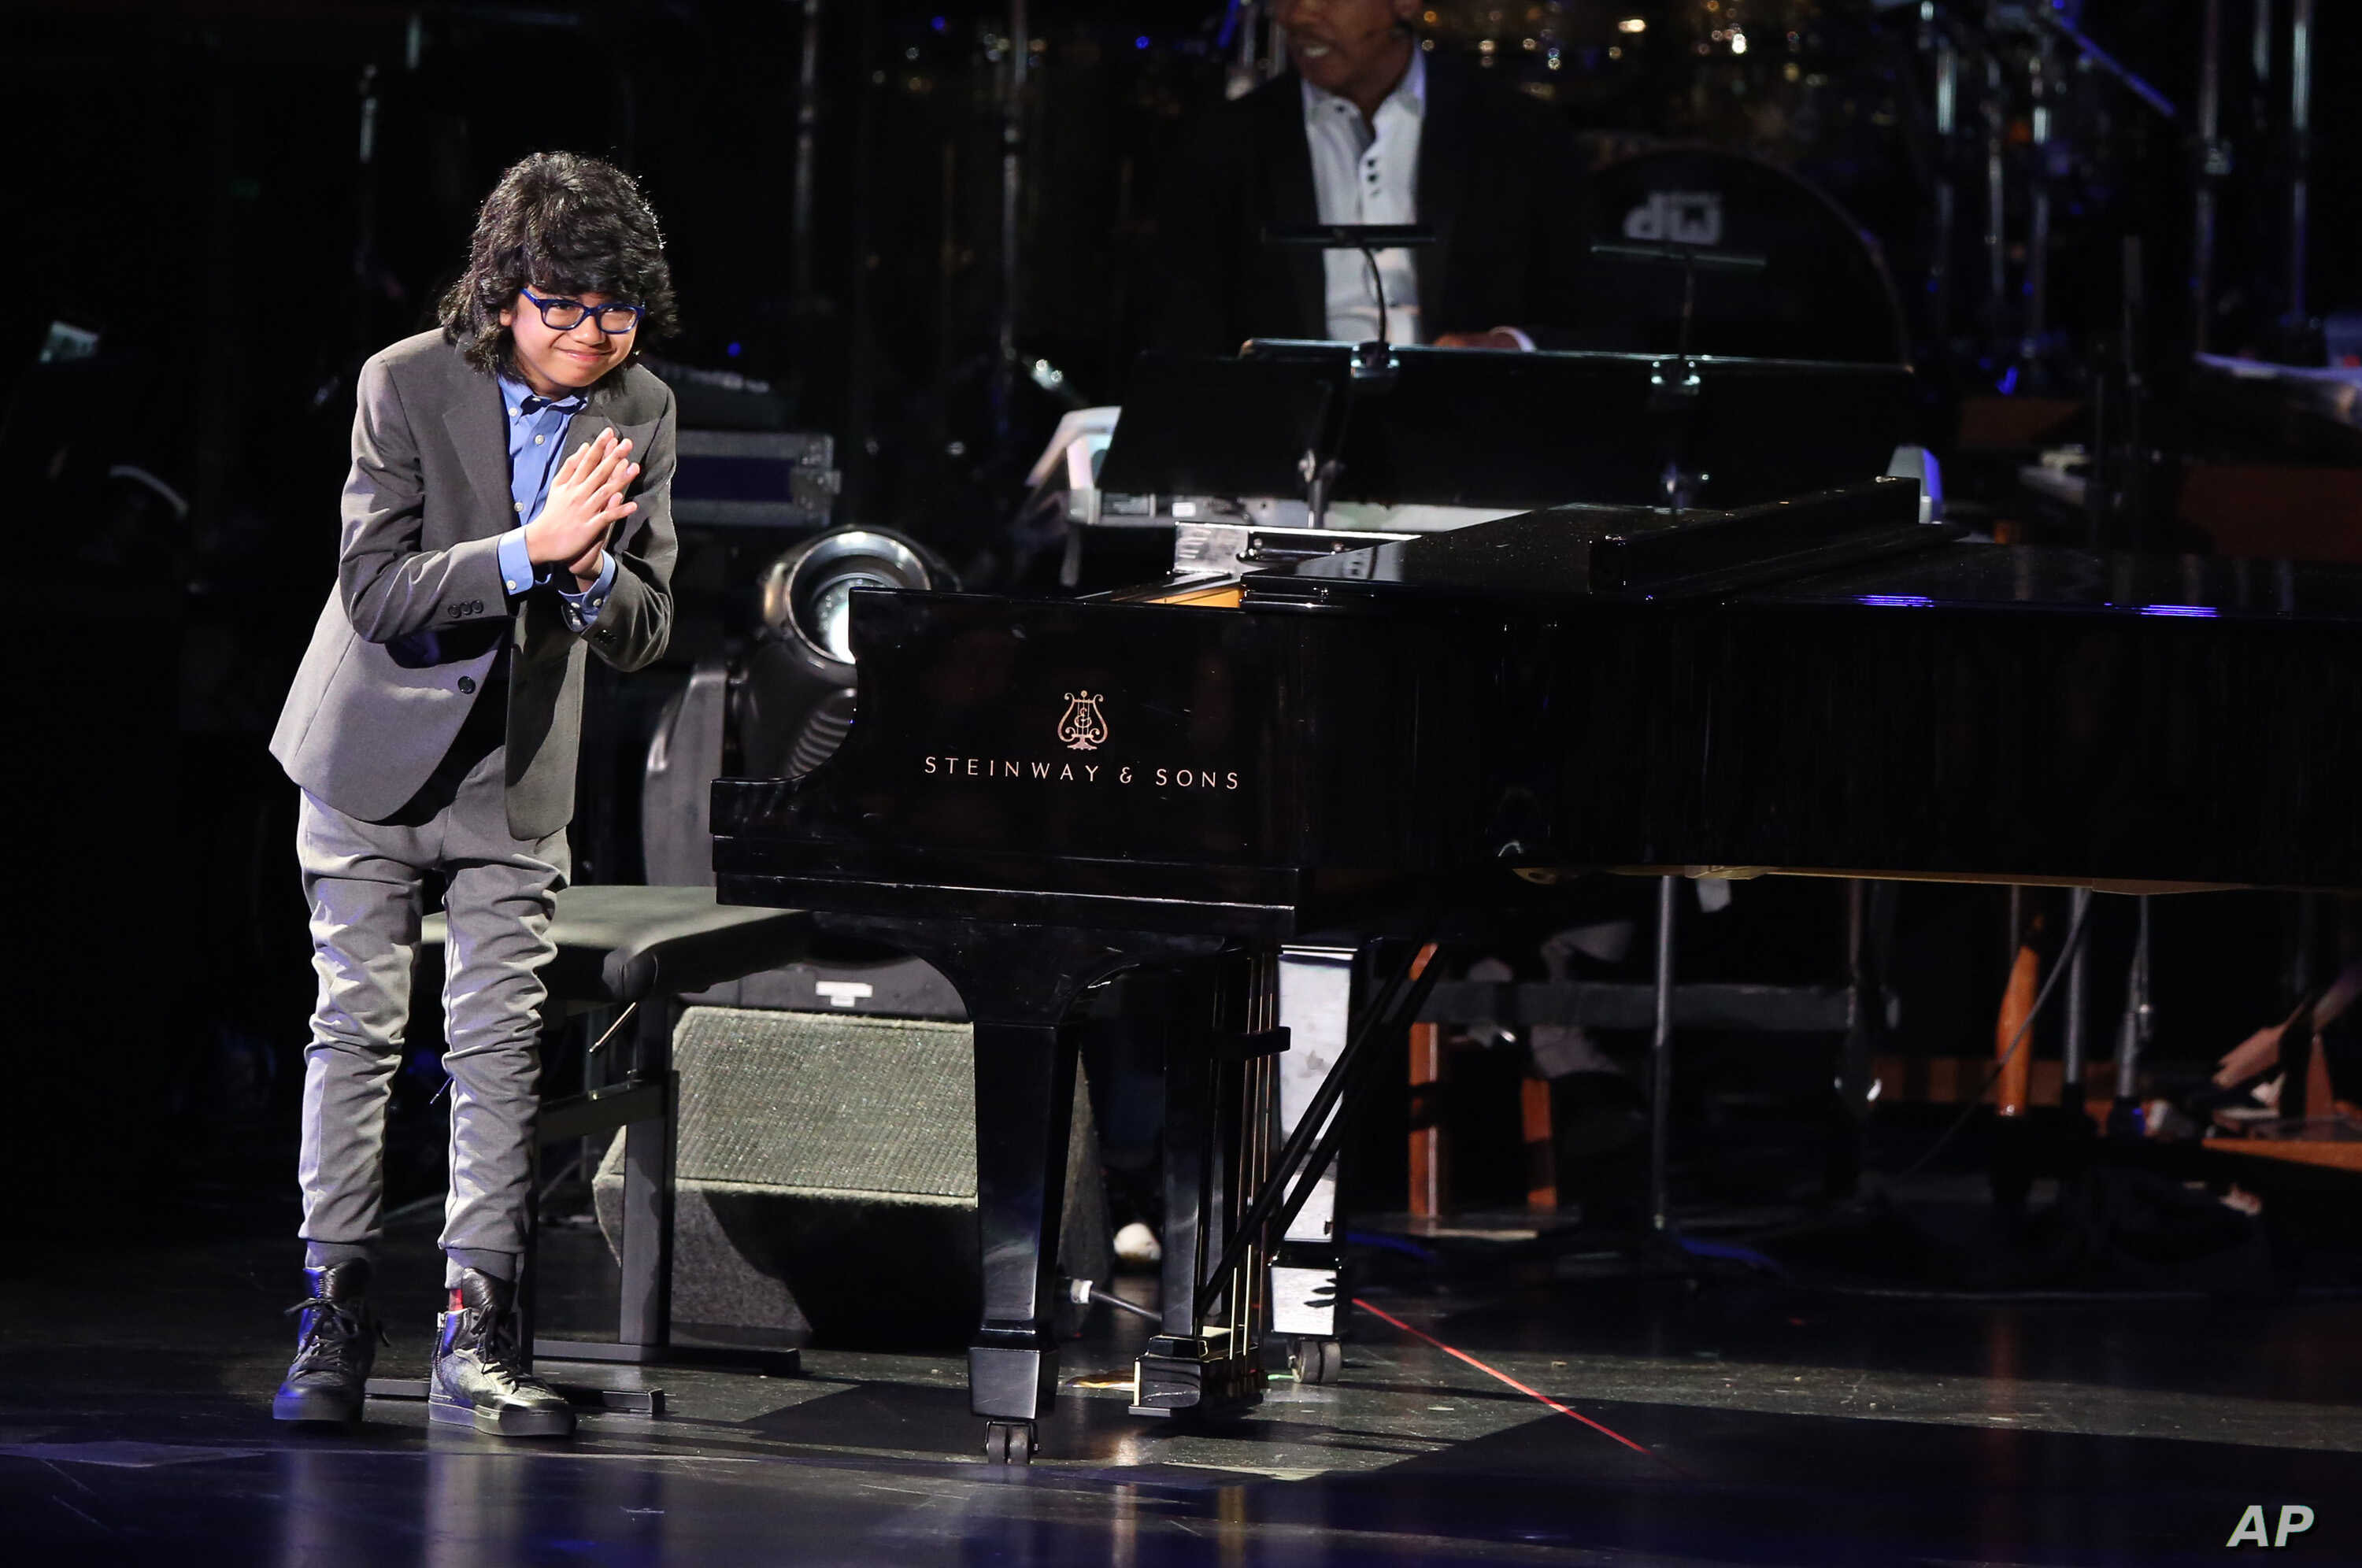 Joey Alexander performs at the 58th annual Grammy Awards, Feb. 15, 2016, in Los Angeles.